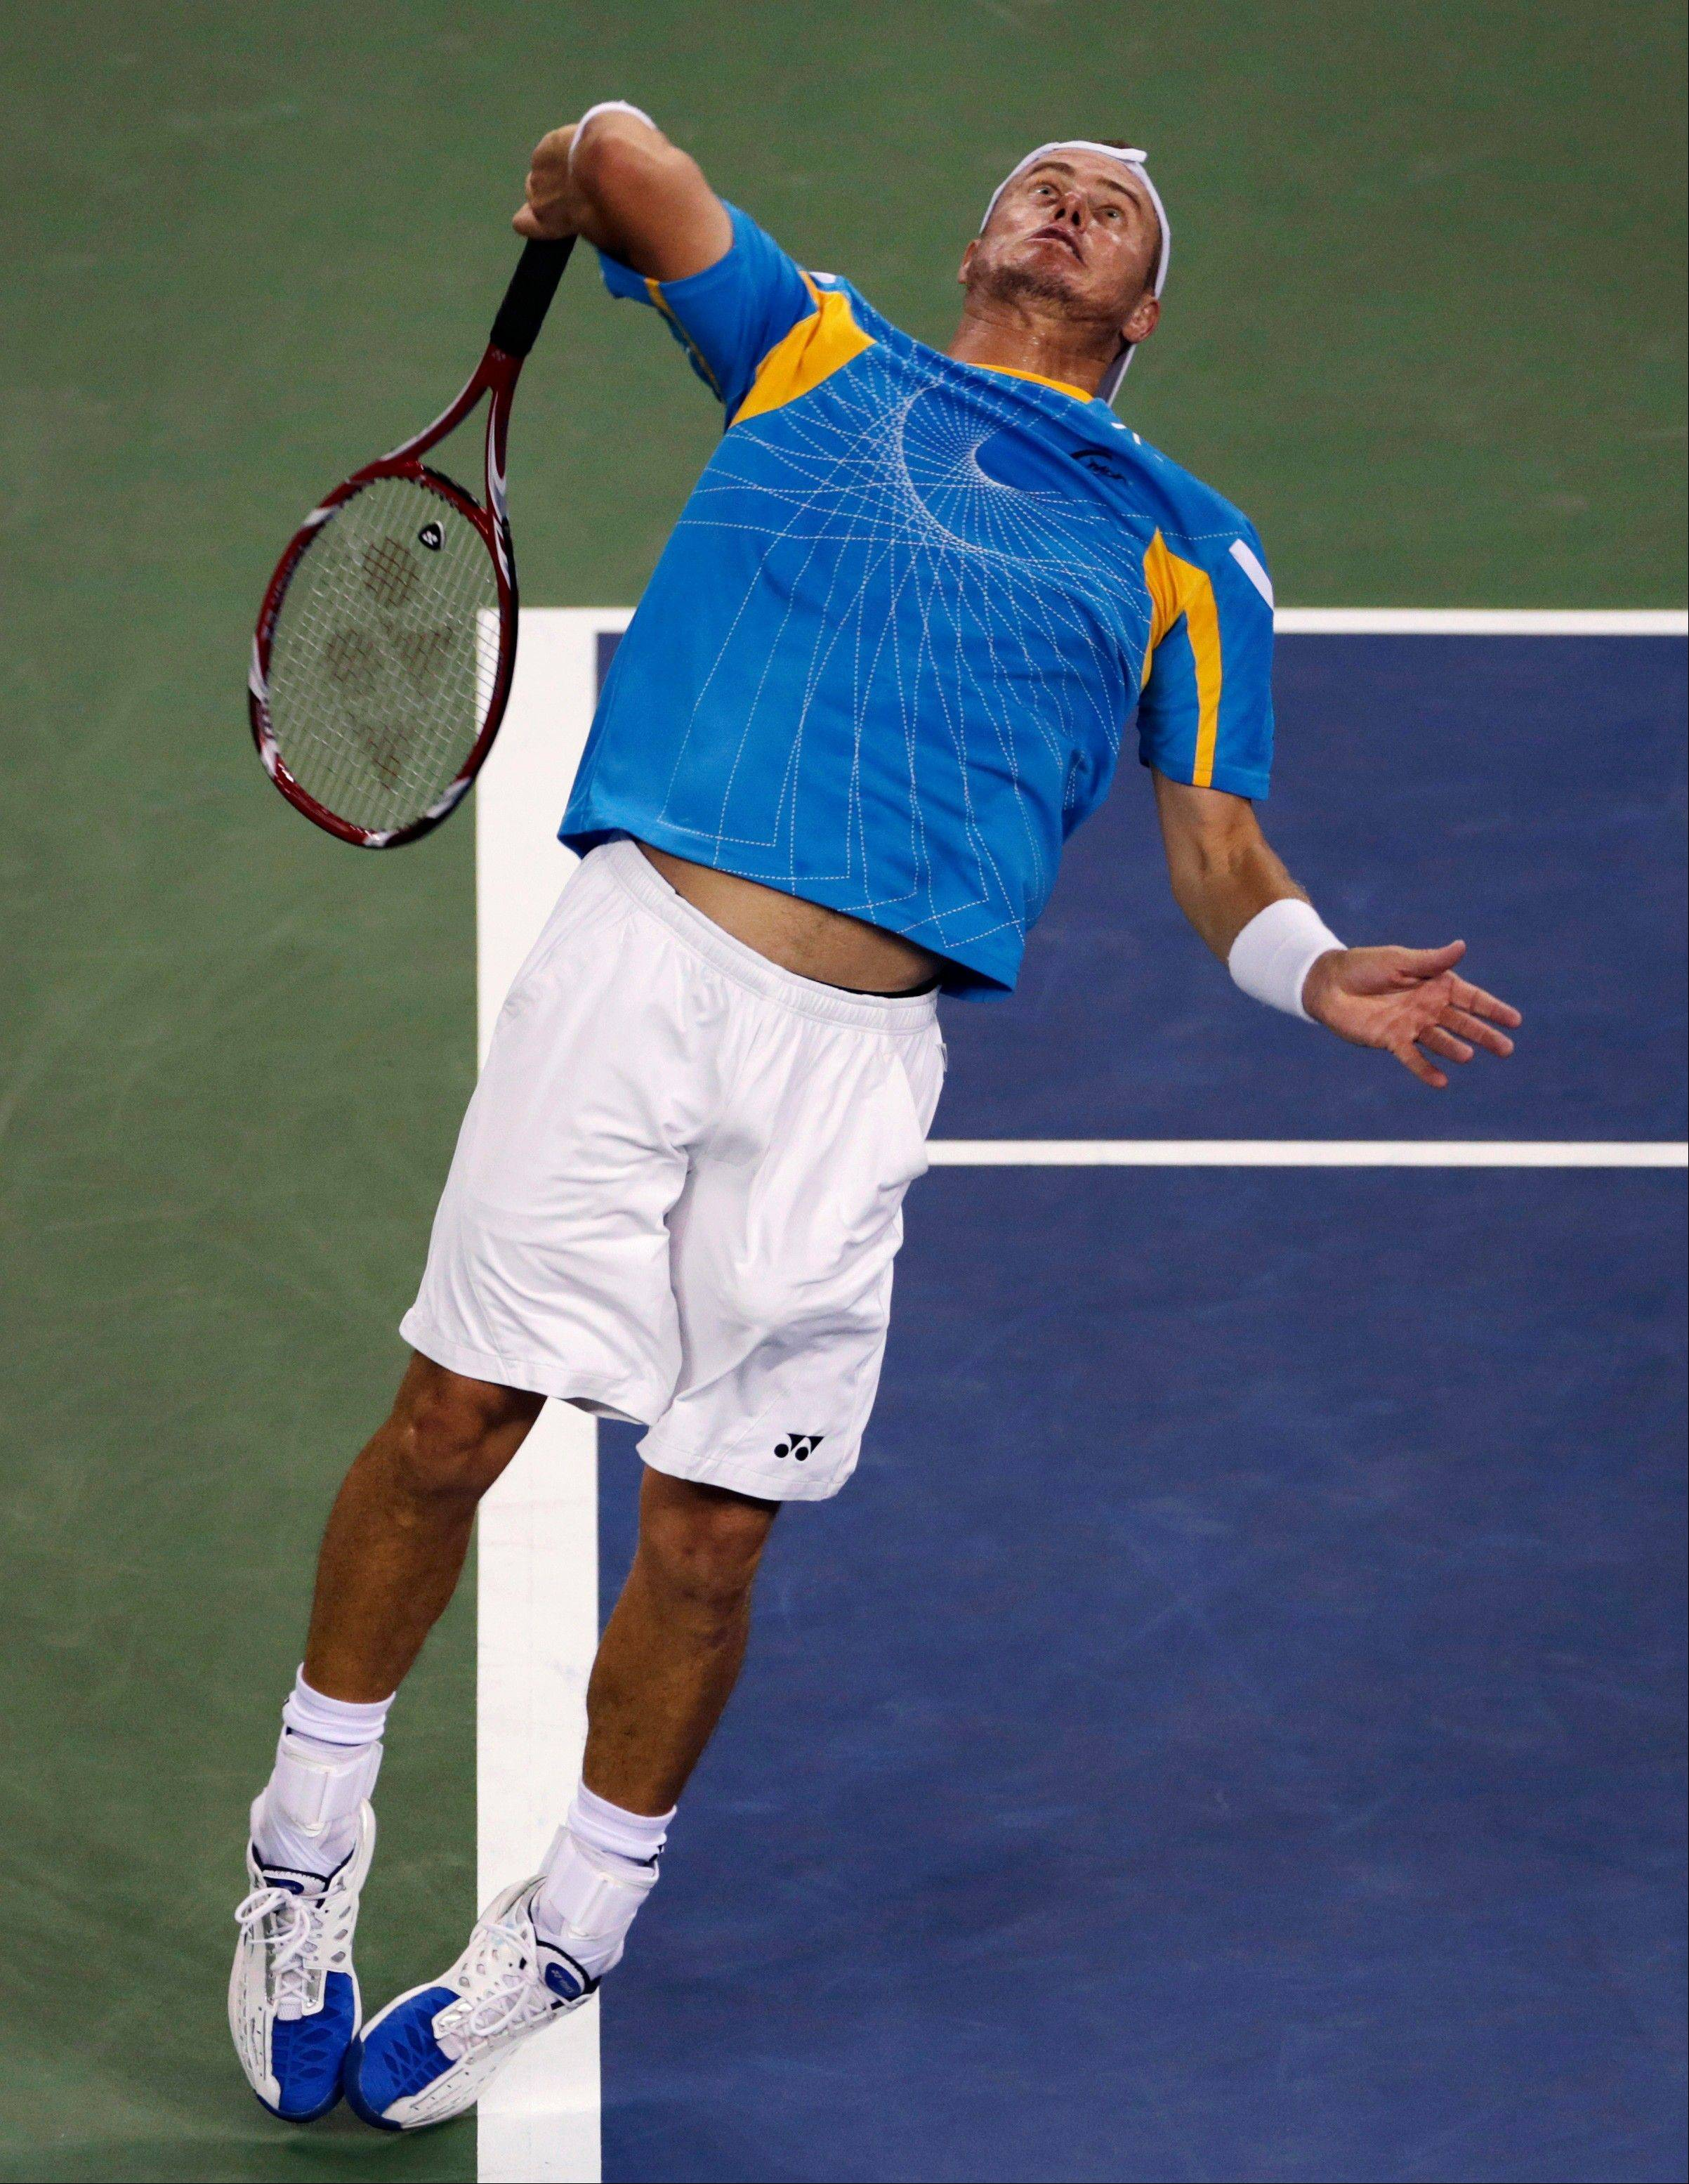 Lleyton Hewitt leaps to serve against Juan Martin del Potro during the second round of the U.S. Open Friday in New York.